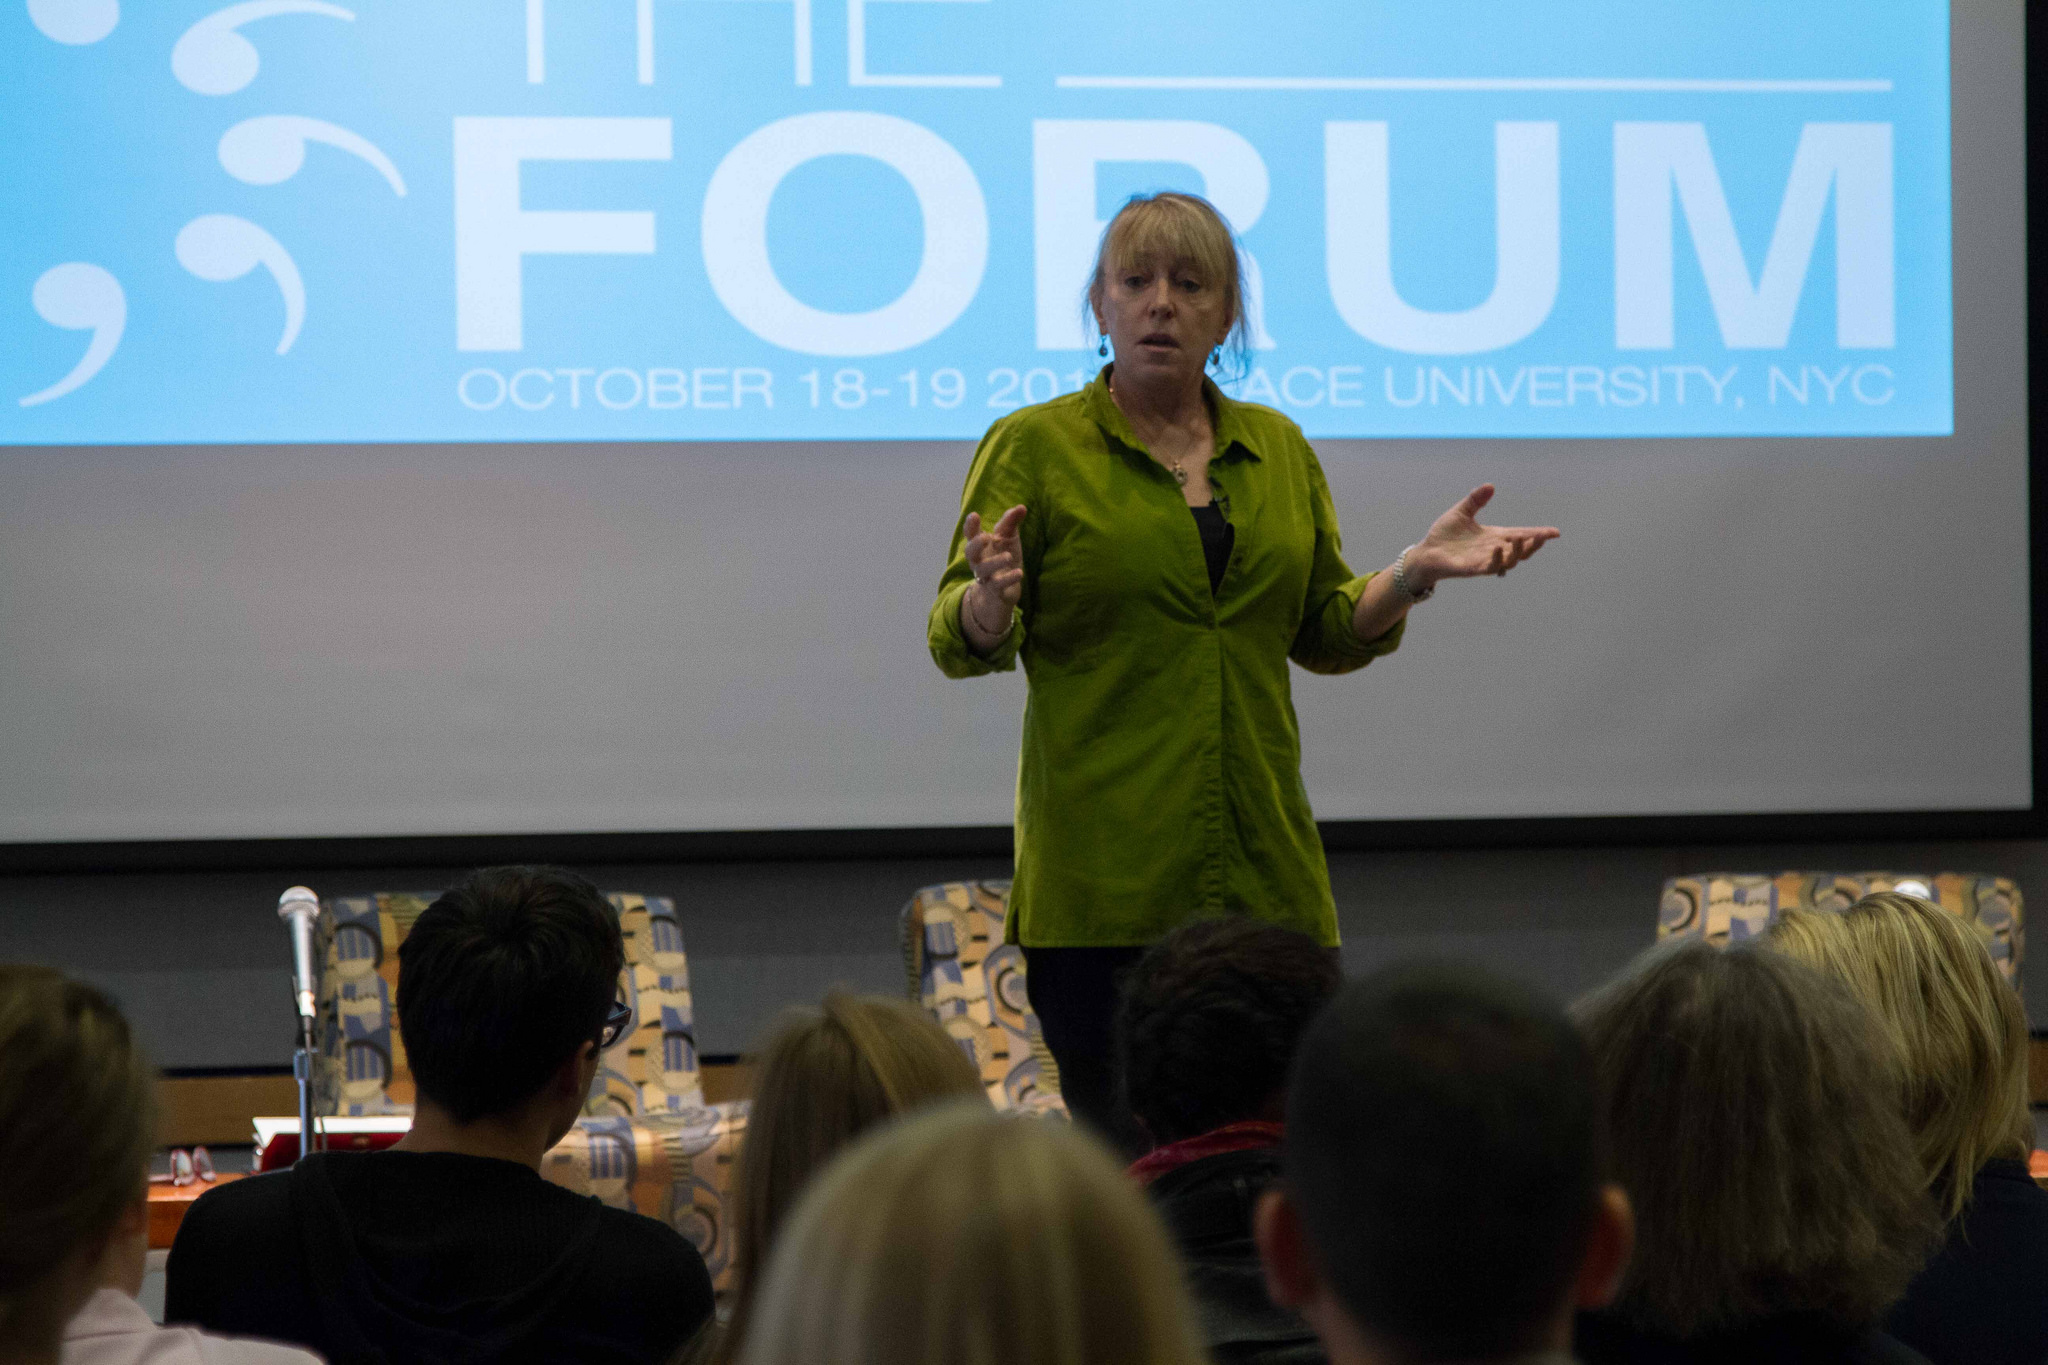 Nobel Peace Prize Laureate Jody Williams delivering keynote address at the 2014 Disarmament Forum at Pace University New York City. Photo: Control Arms.